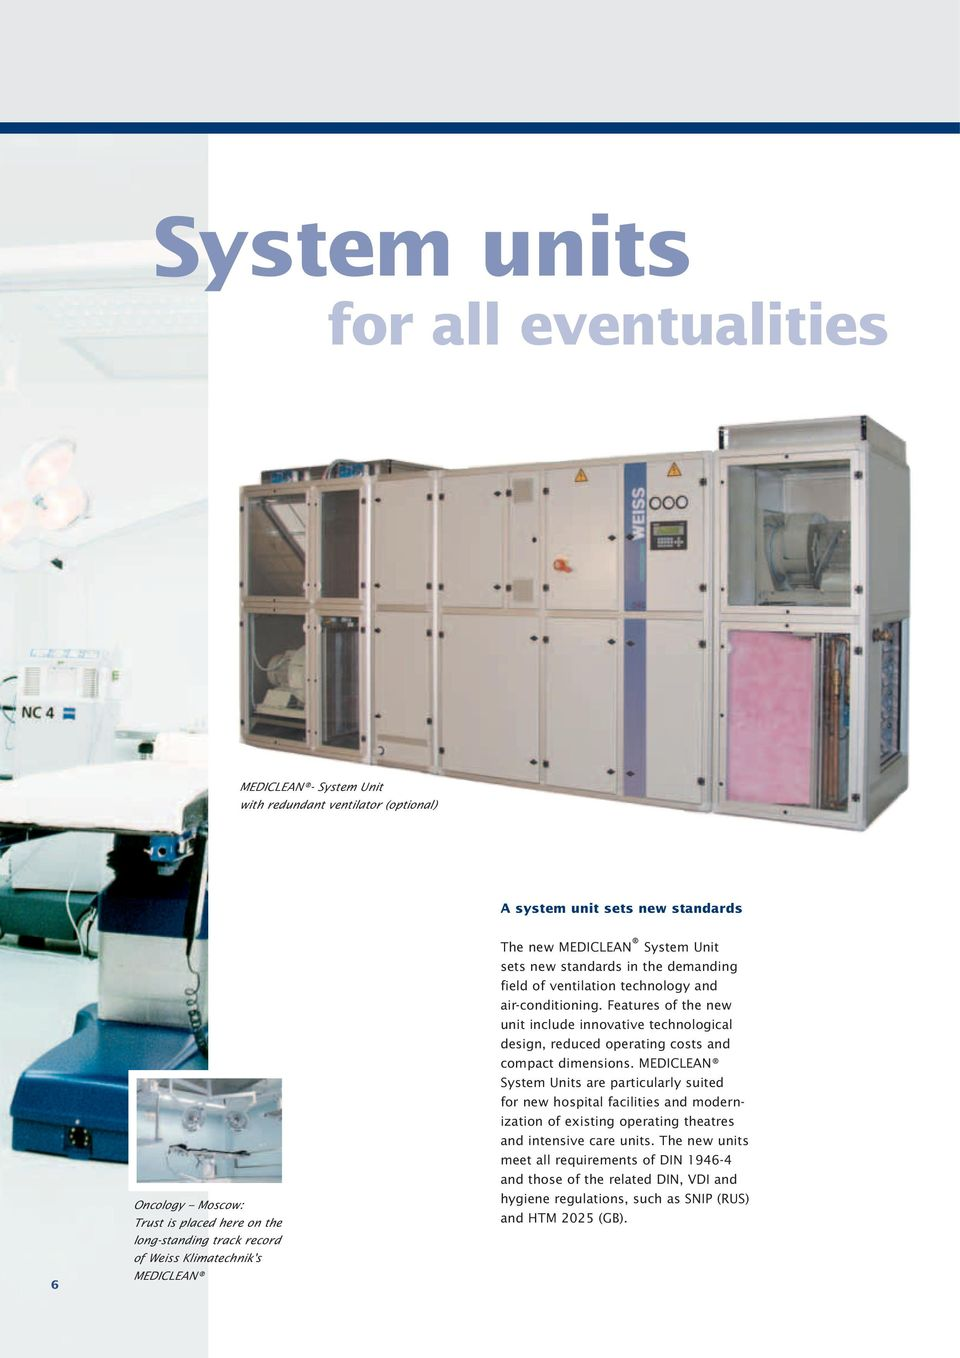 Features of the new unit include innovative technological design, reduced operating costs and compact dimensions.